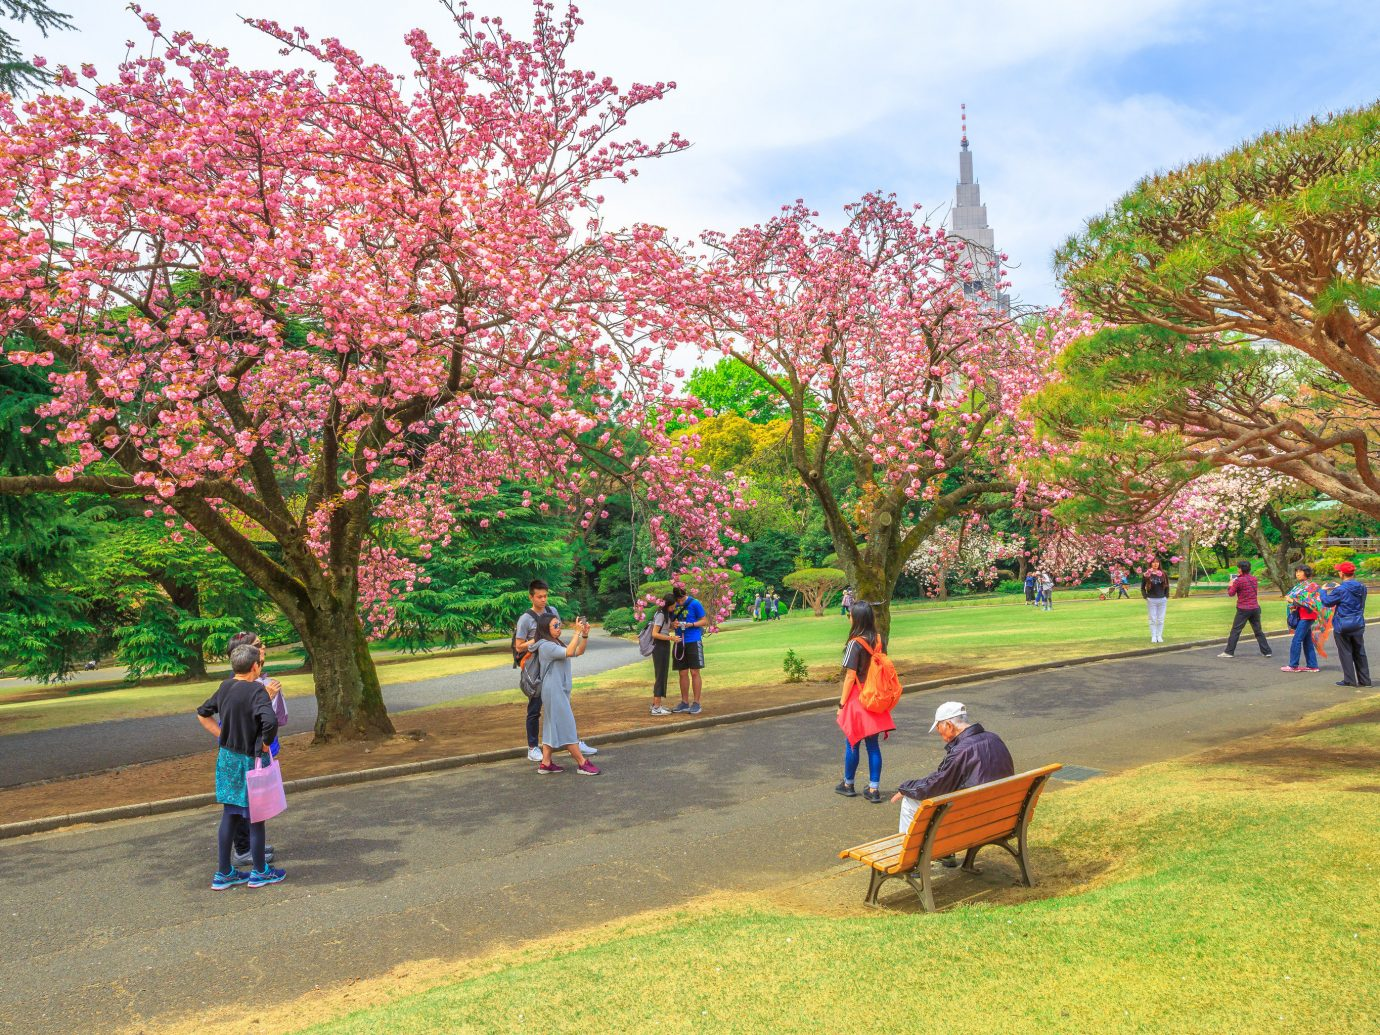 Japan Trip Ideas tree outdoor grass sky plant flower Nature spring woody plant park blossom cherry blossom leaf leisure recreation branch people City landscape